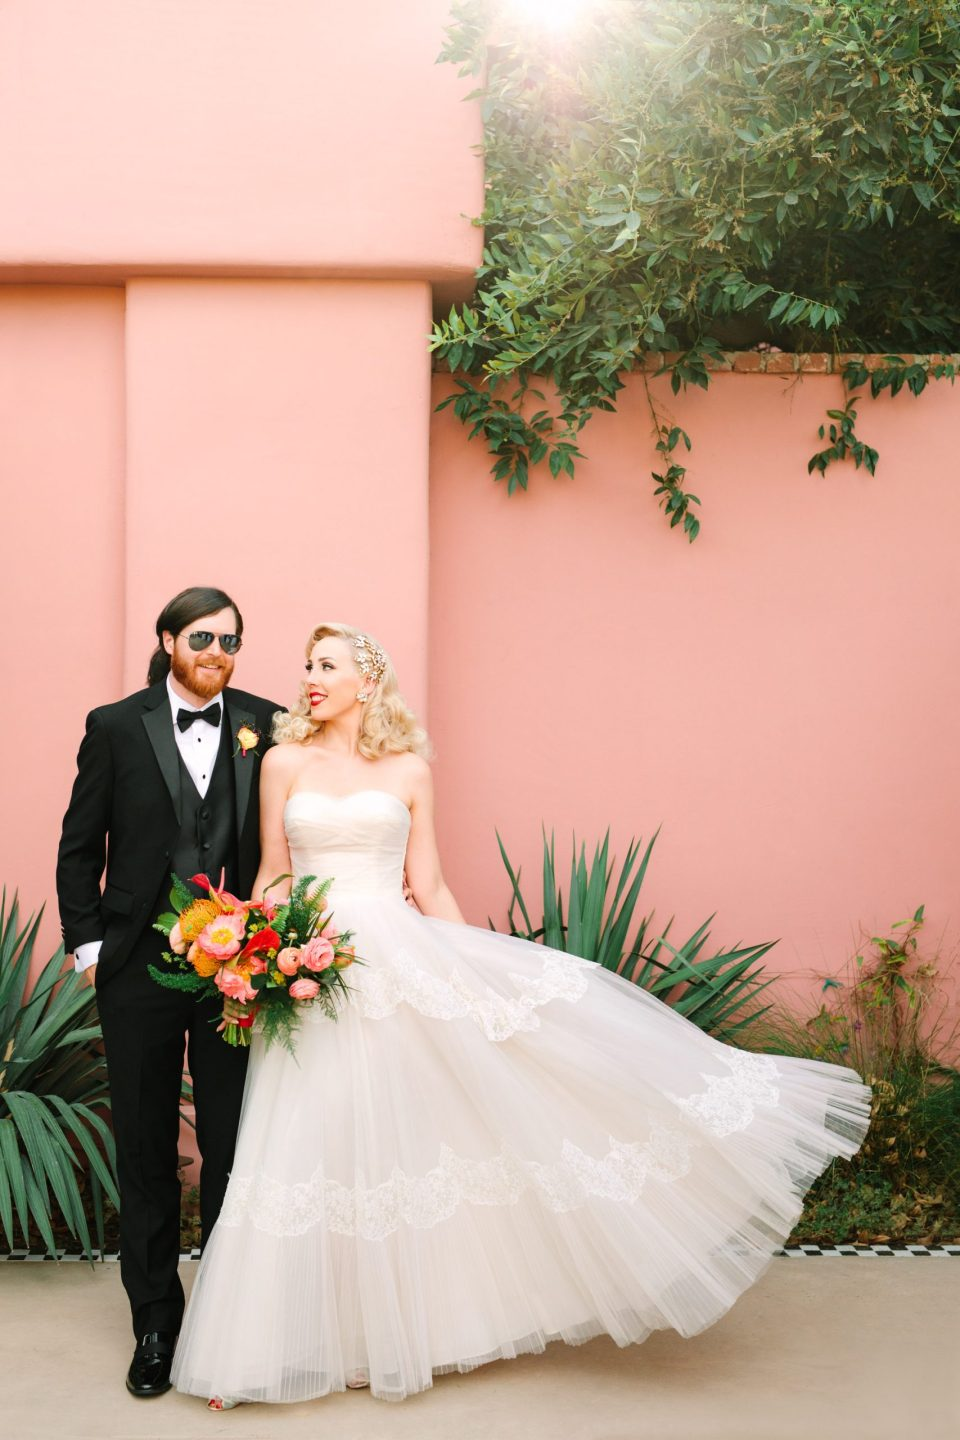 Bride and groom at pink Sands Hotel and Spa www.marycostaweddings.com